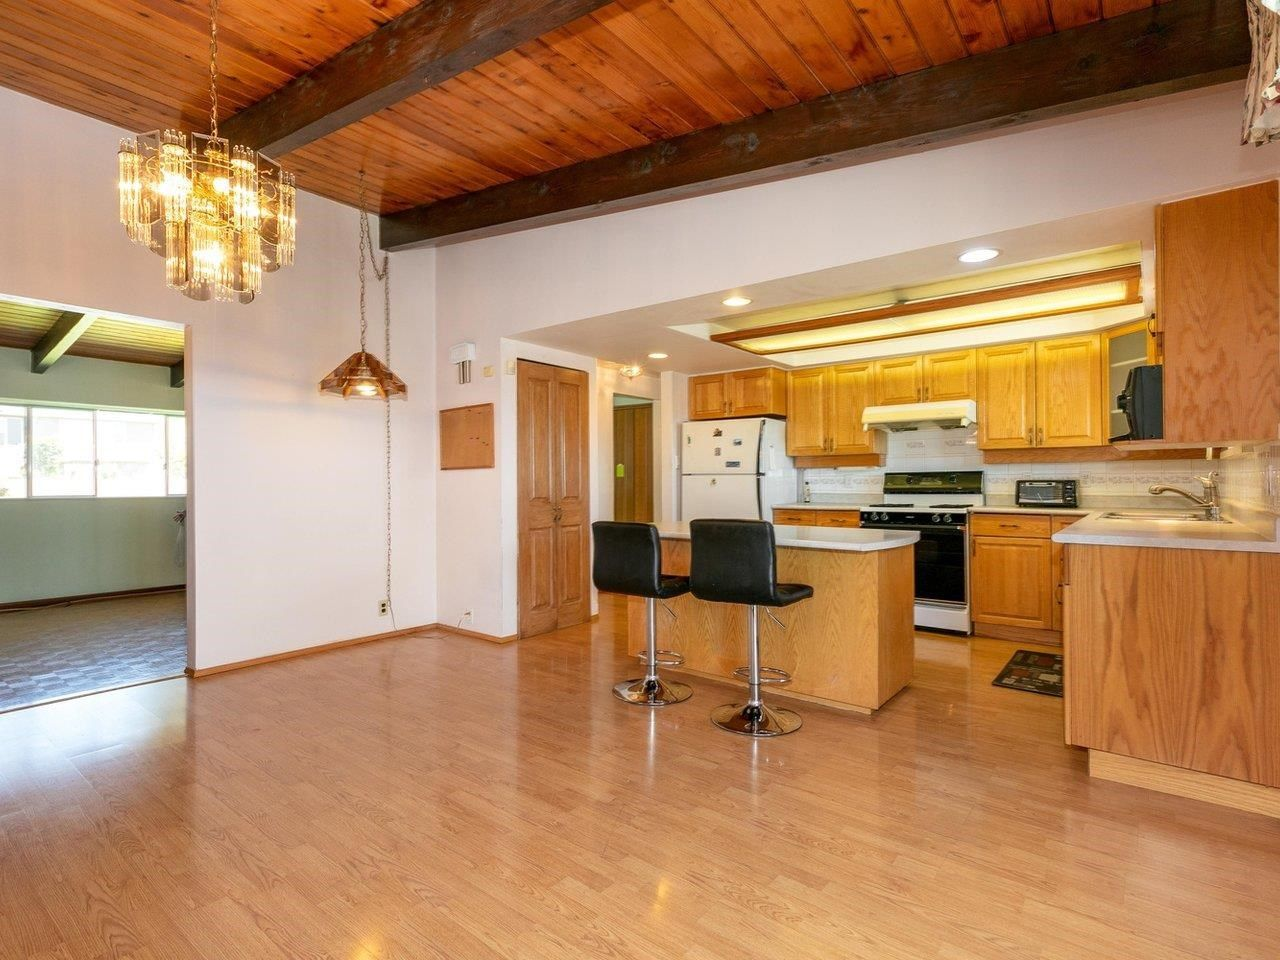 Photo 6: Photos: 6860 HYCREST Drive in Burnaby: Montecito House for sale (Burnaby North)  : MLS®# R2594917